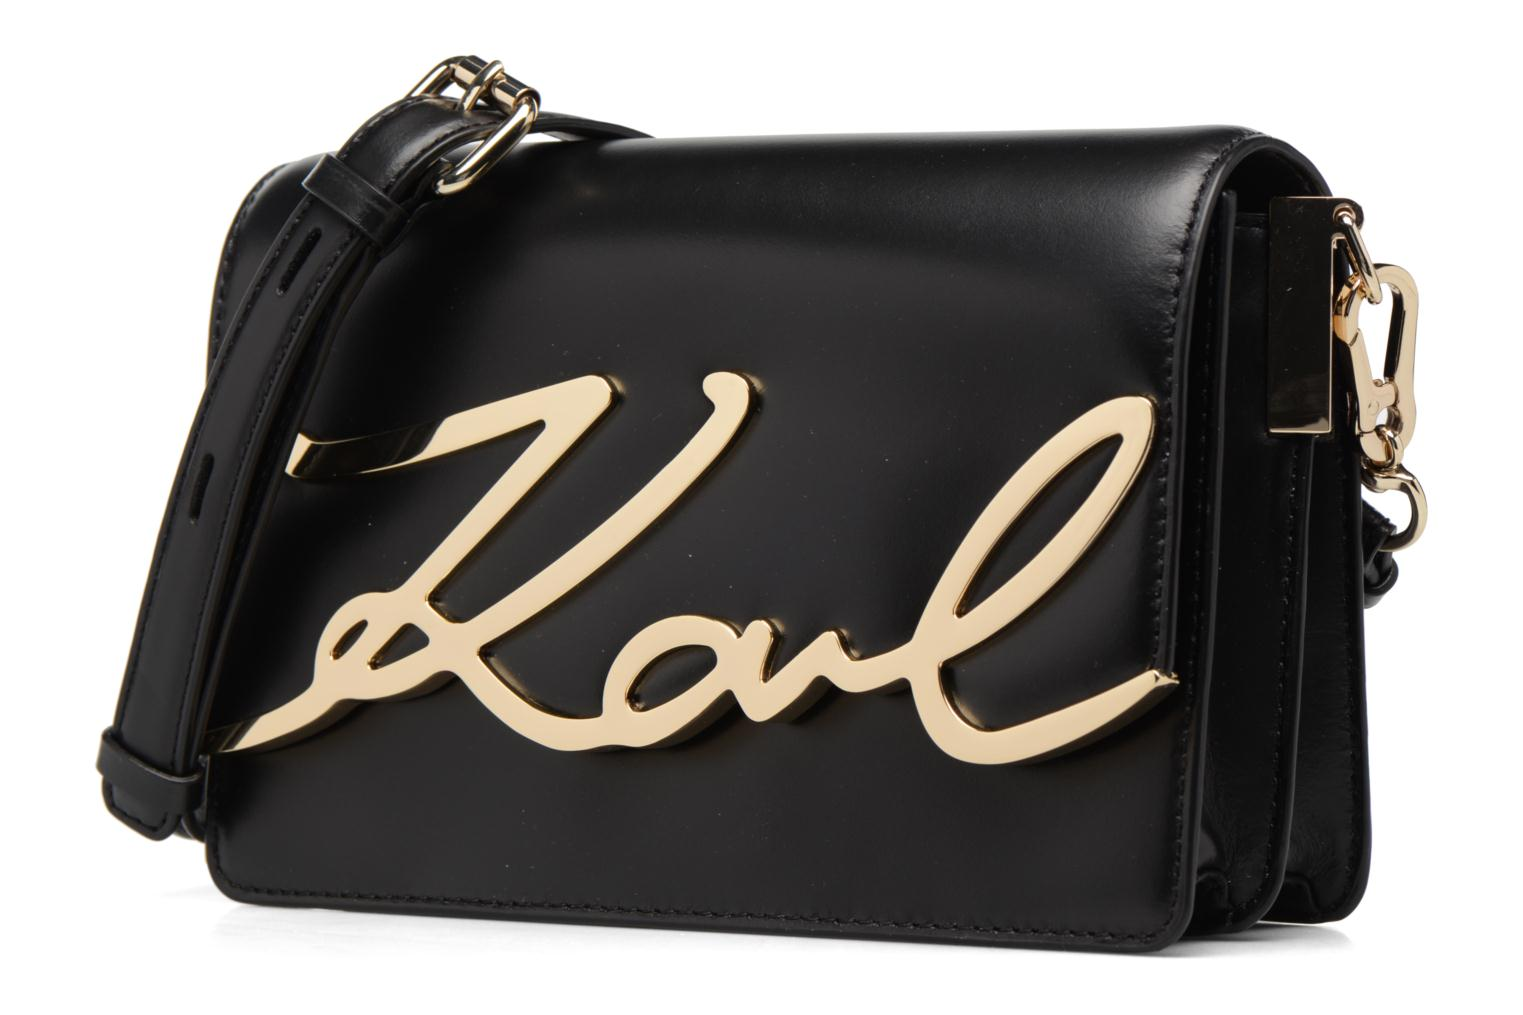 Bag K GOLD KARL Shoulder LAGERFELD BLACK A997 Signature OUUZqwI8